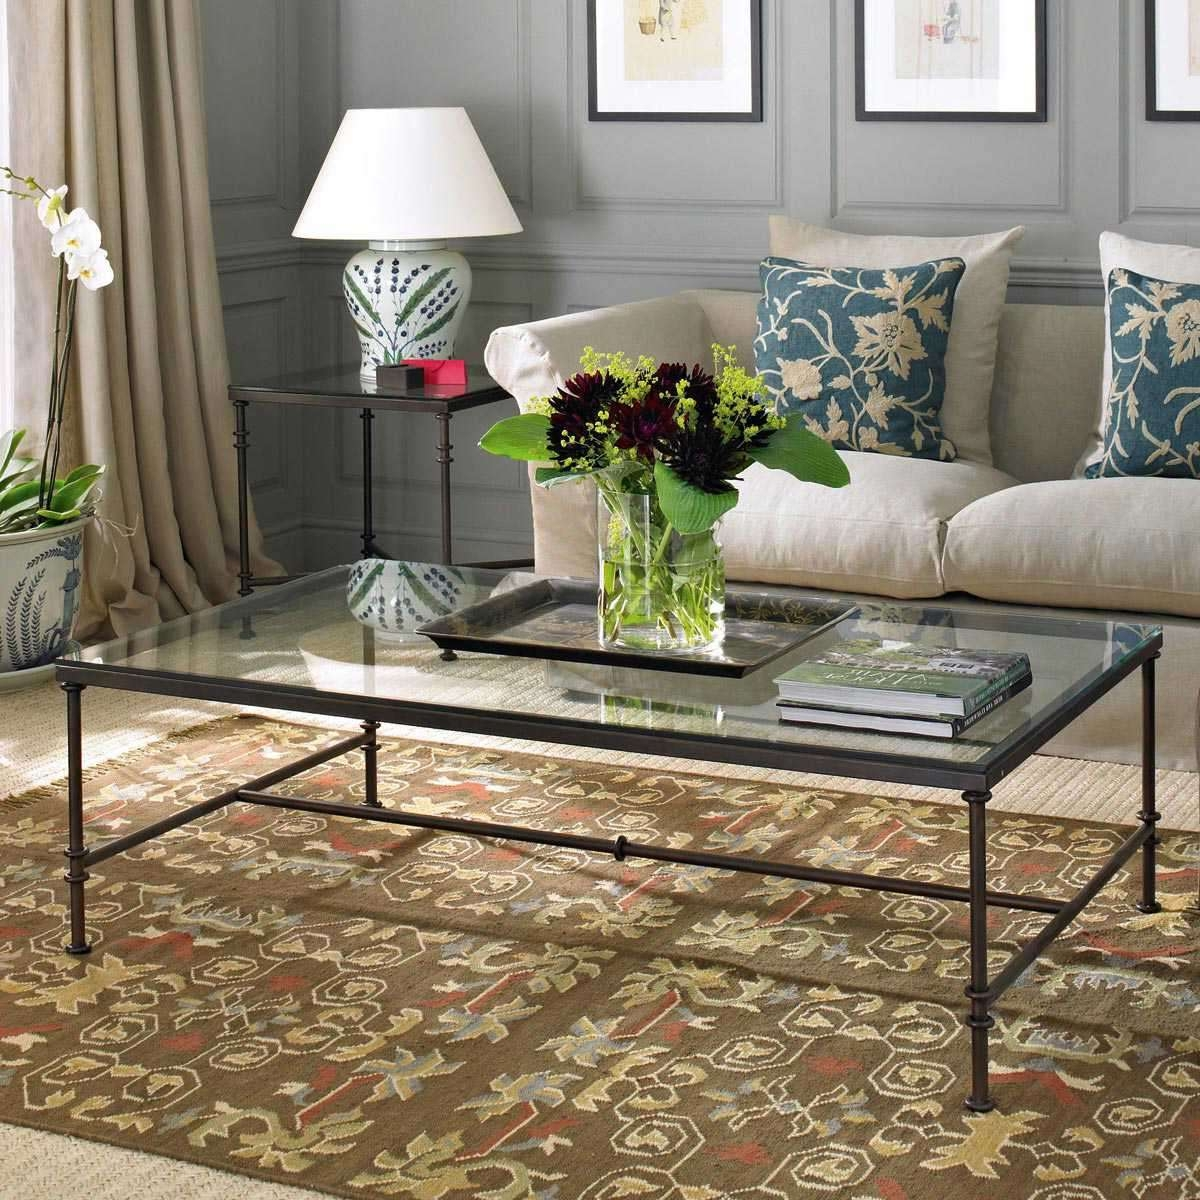 Fashionable Metal Glass Coffee Tables With Regard To Metal And Glass Coffee Table (View 7 of 20)